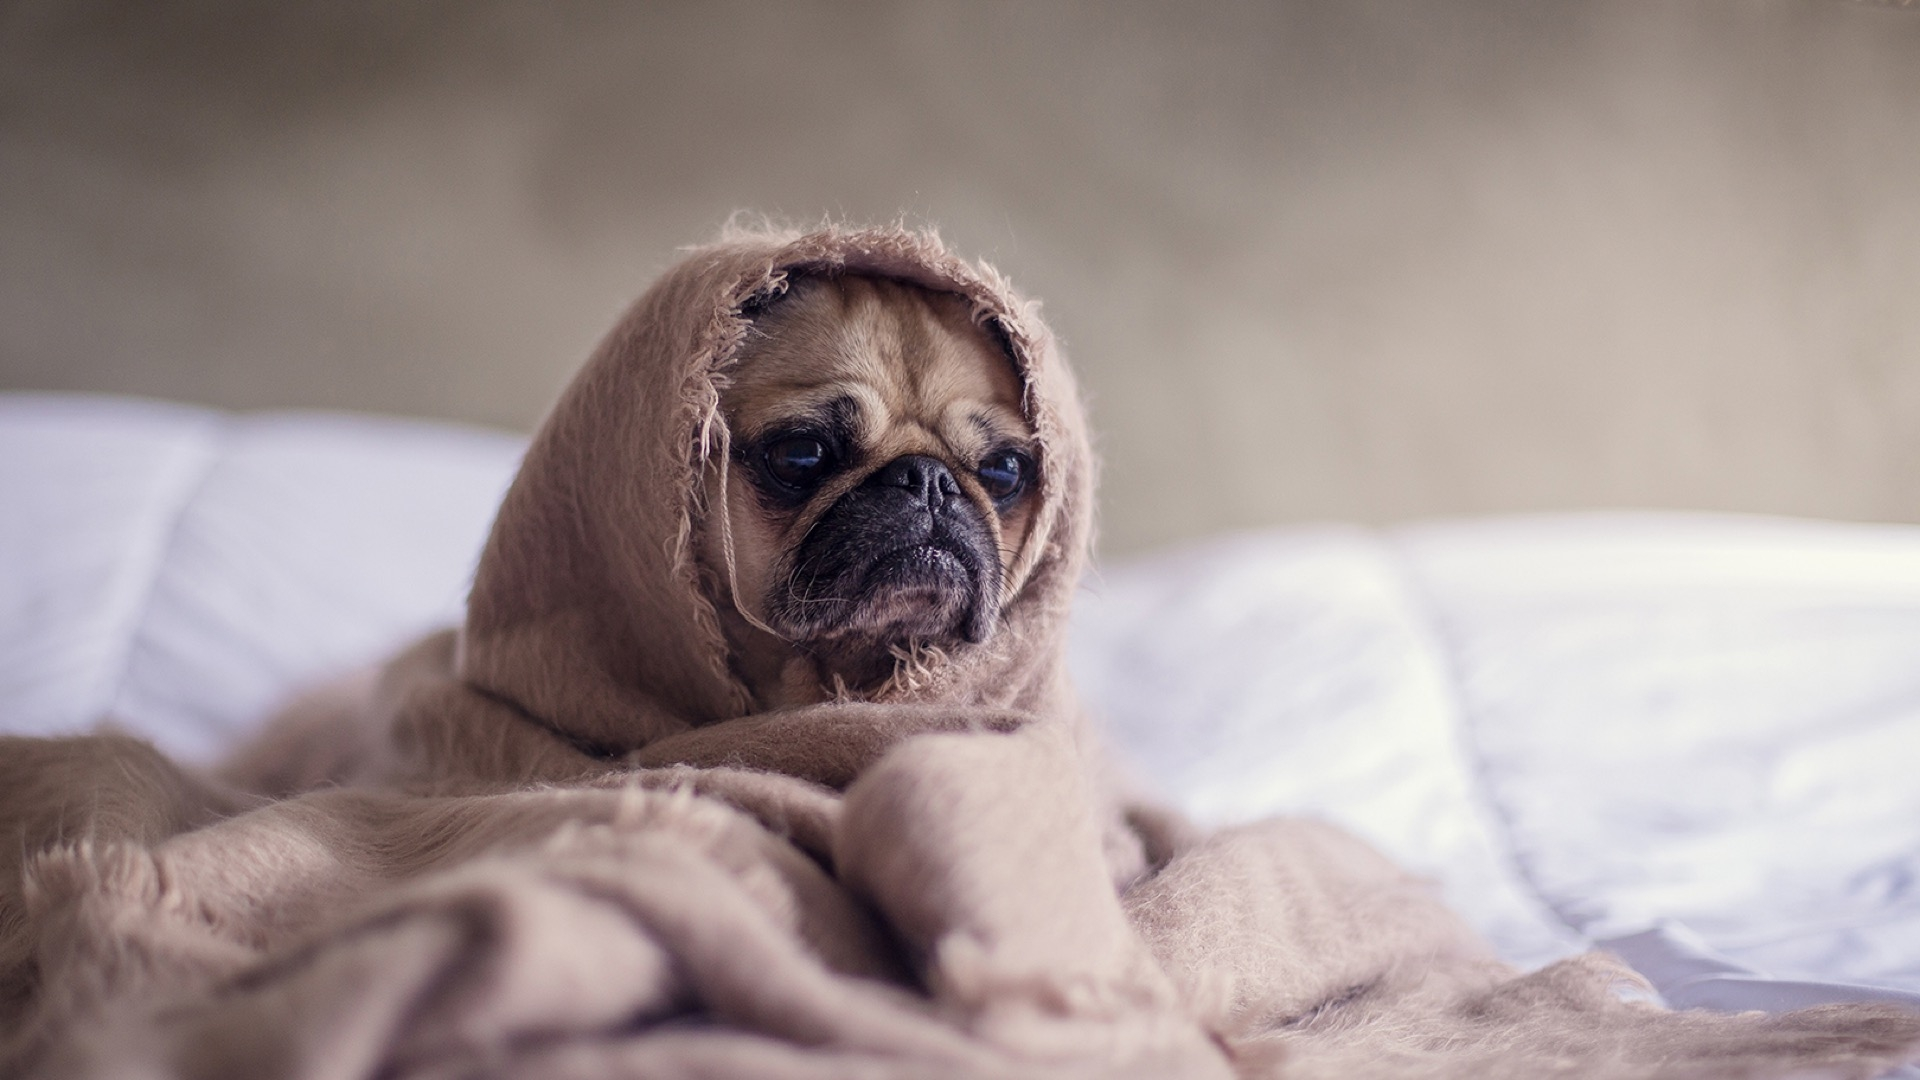 another pug in a blanket